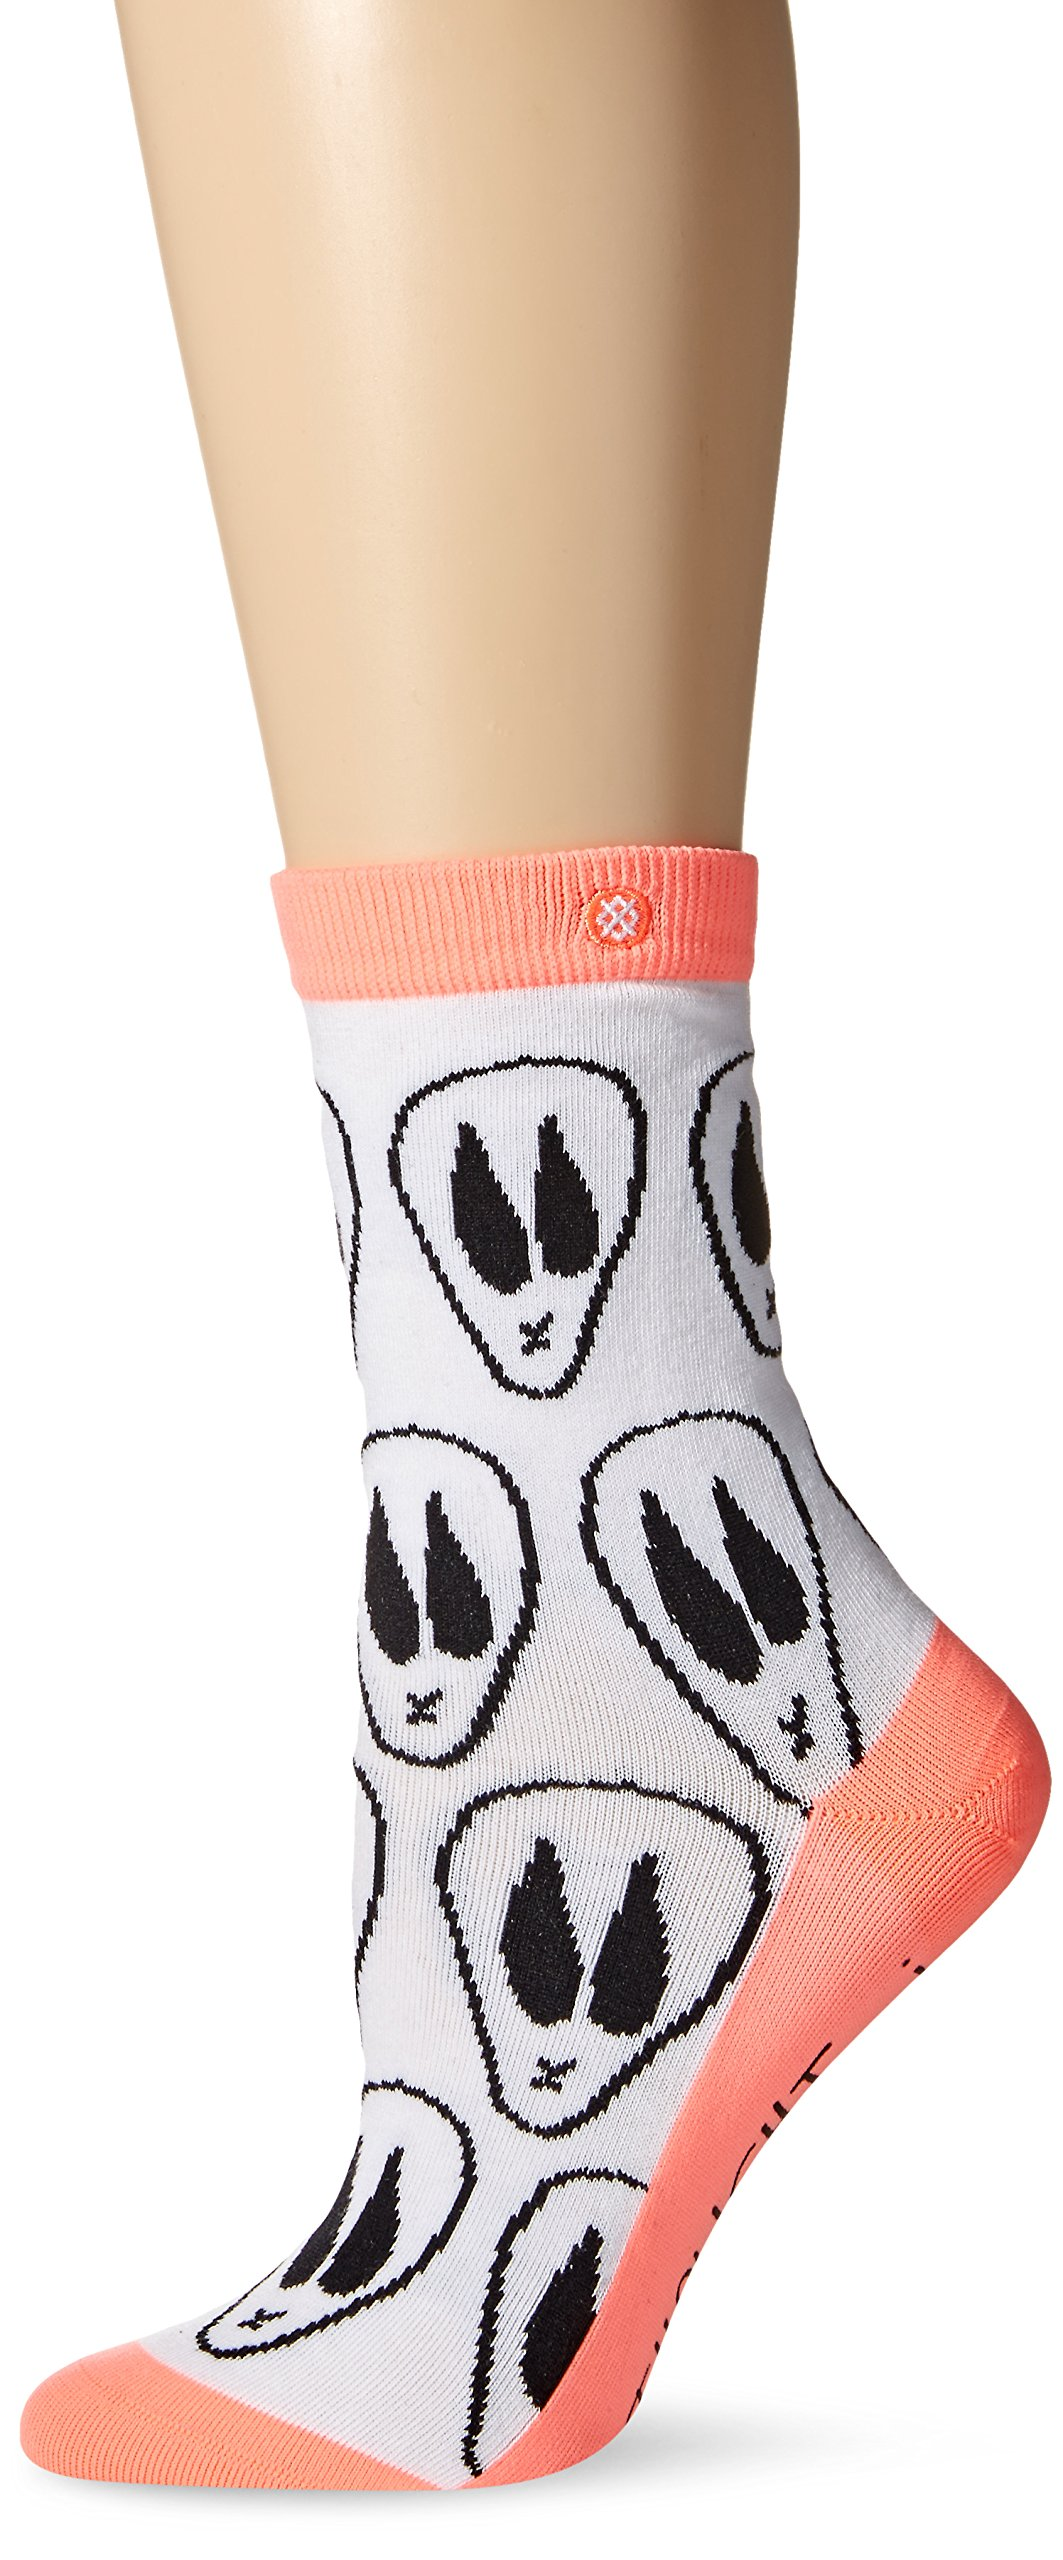 Stance Women's I Thought I Was an Alien Anklet Sock, White, Small